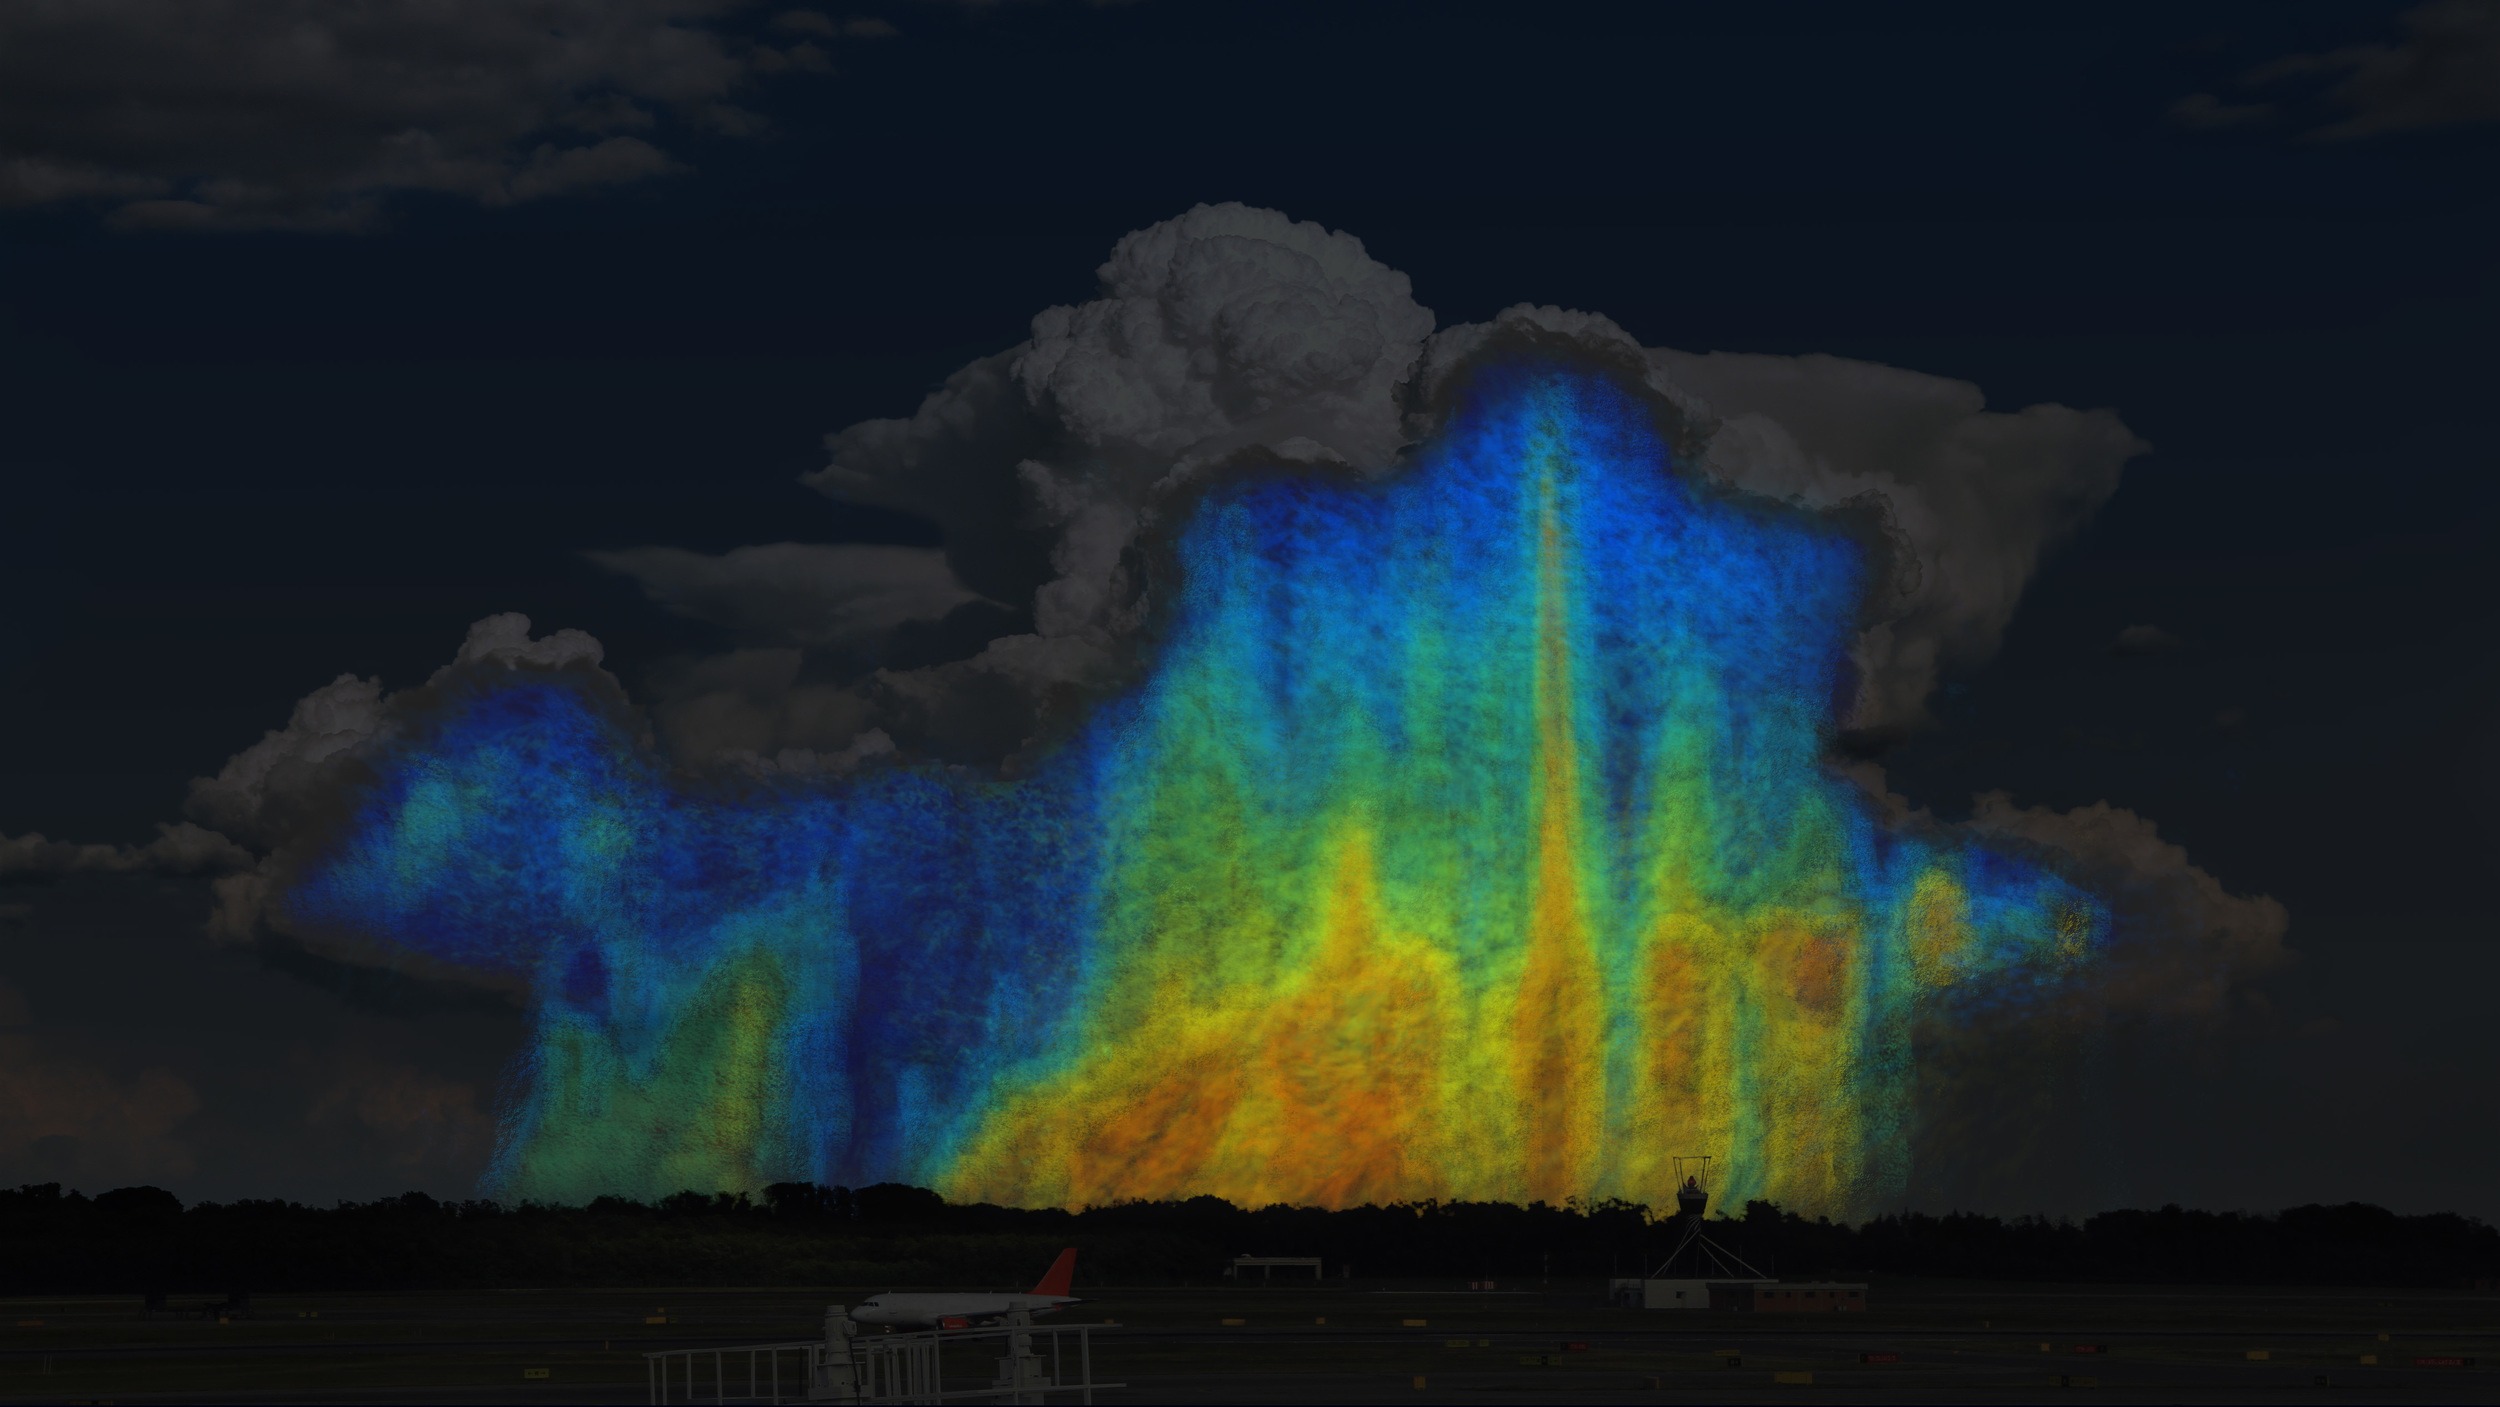 This is a conceptual image showing how the size and distribution of raindrops varies within a storm. Blues and greens represent small raindrops that are 0.5-3mm in size. Yellows, oranges, and reds represent larger raindrops that are 4-6mm in size. A storm with a higher ratio of yellows, oranges, and reds will contain more water than a storm with a higher ratio of blues and greens. - Image   Credits: NASA/Goddard